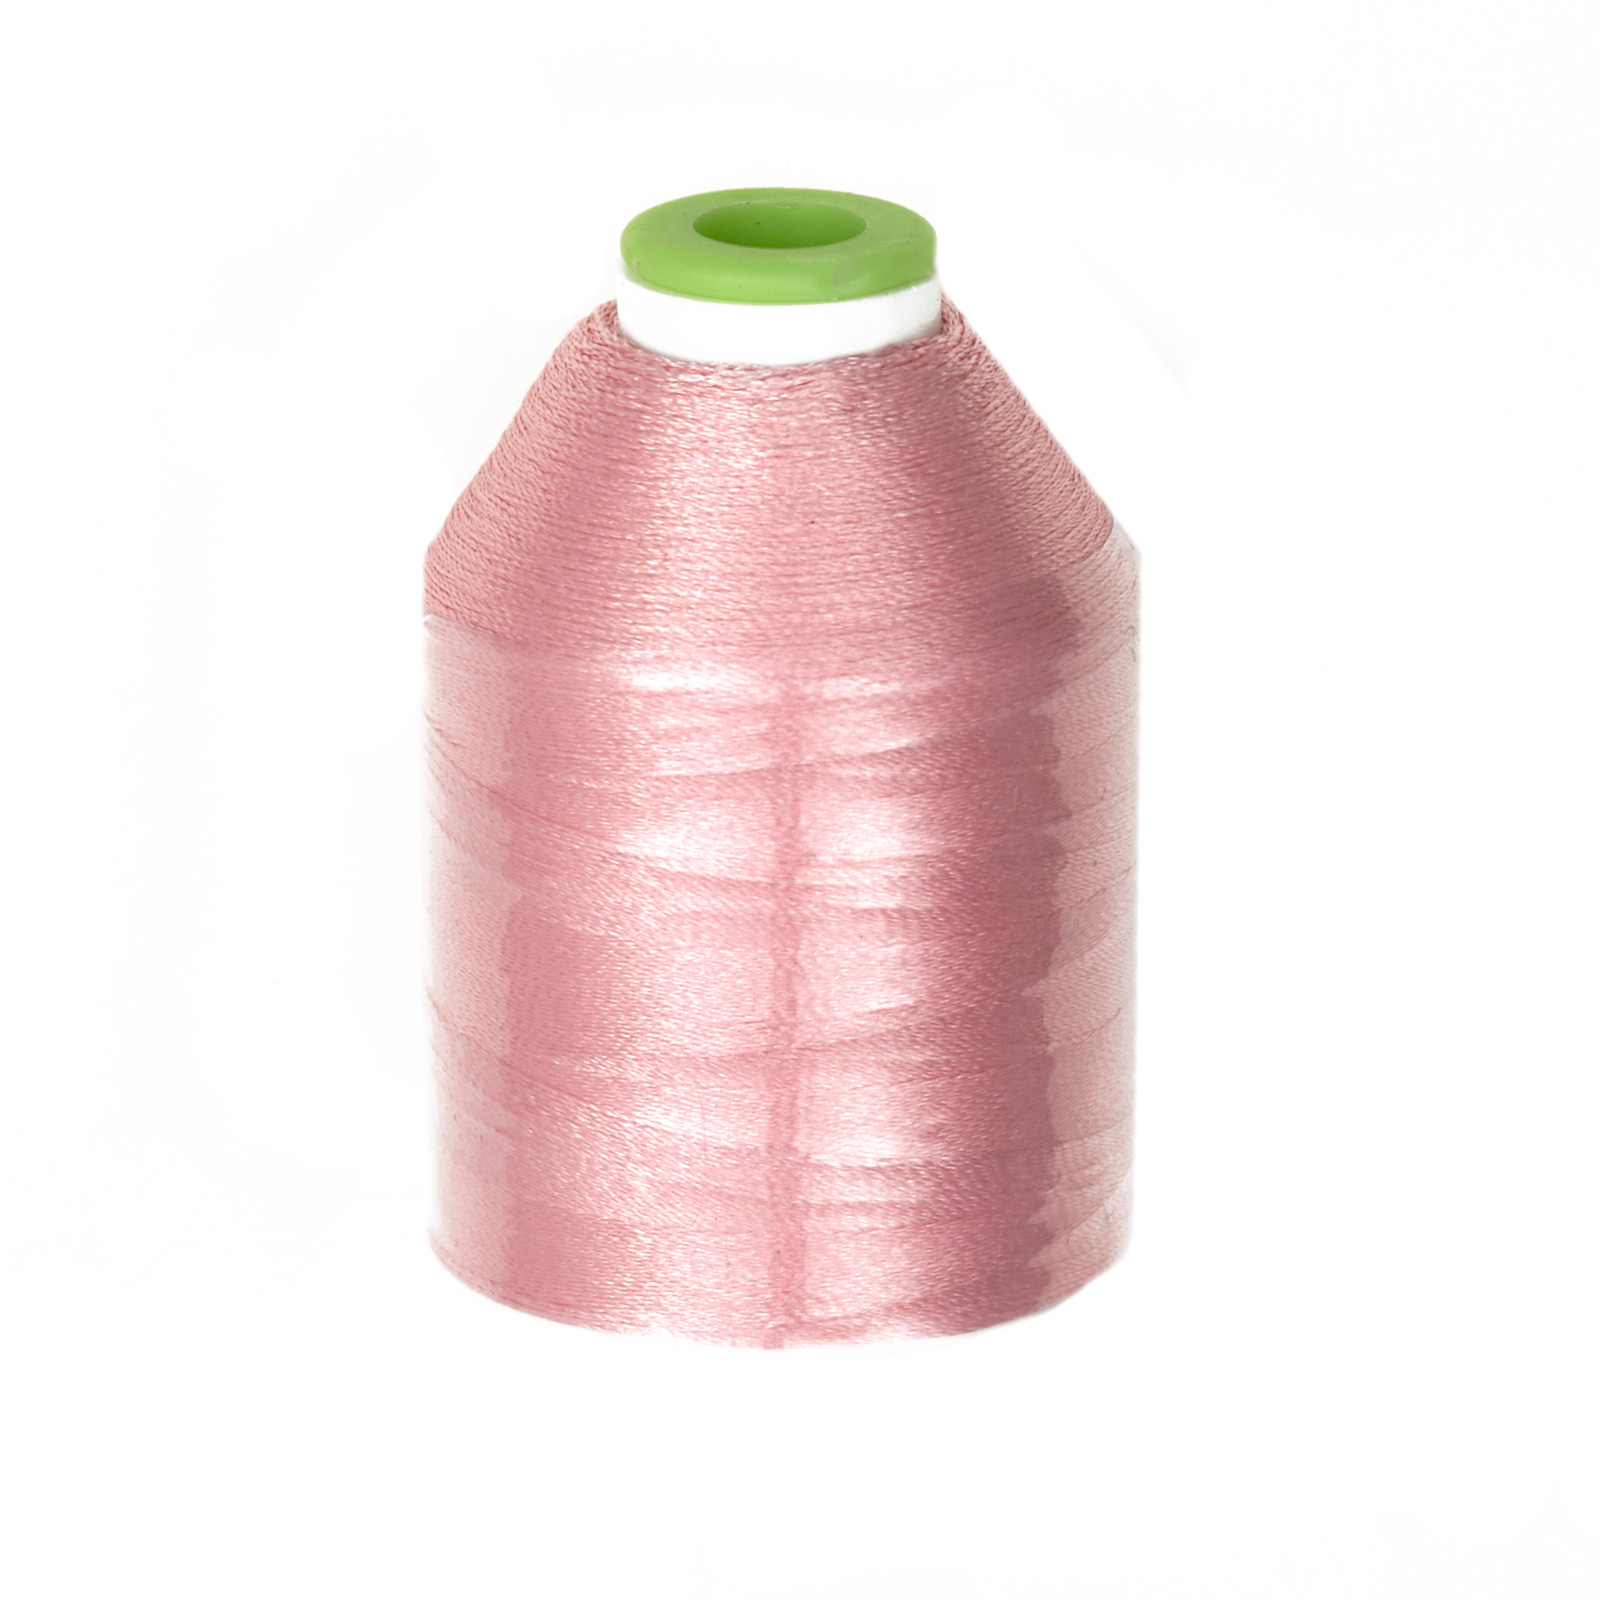 Coats & Clark Trilobal Embroidery Thread 1100 Yds. Light Pink by Coats & Clark in USA